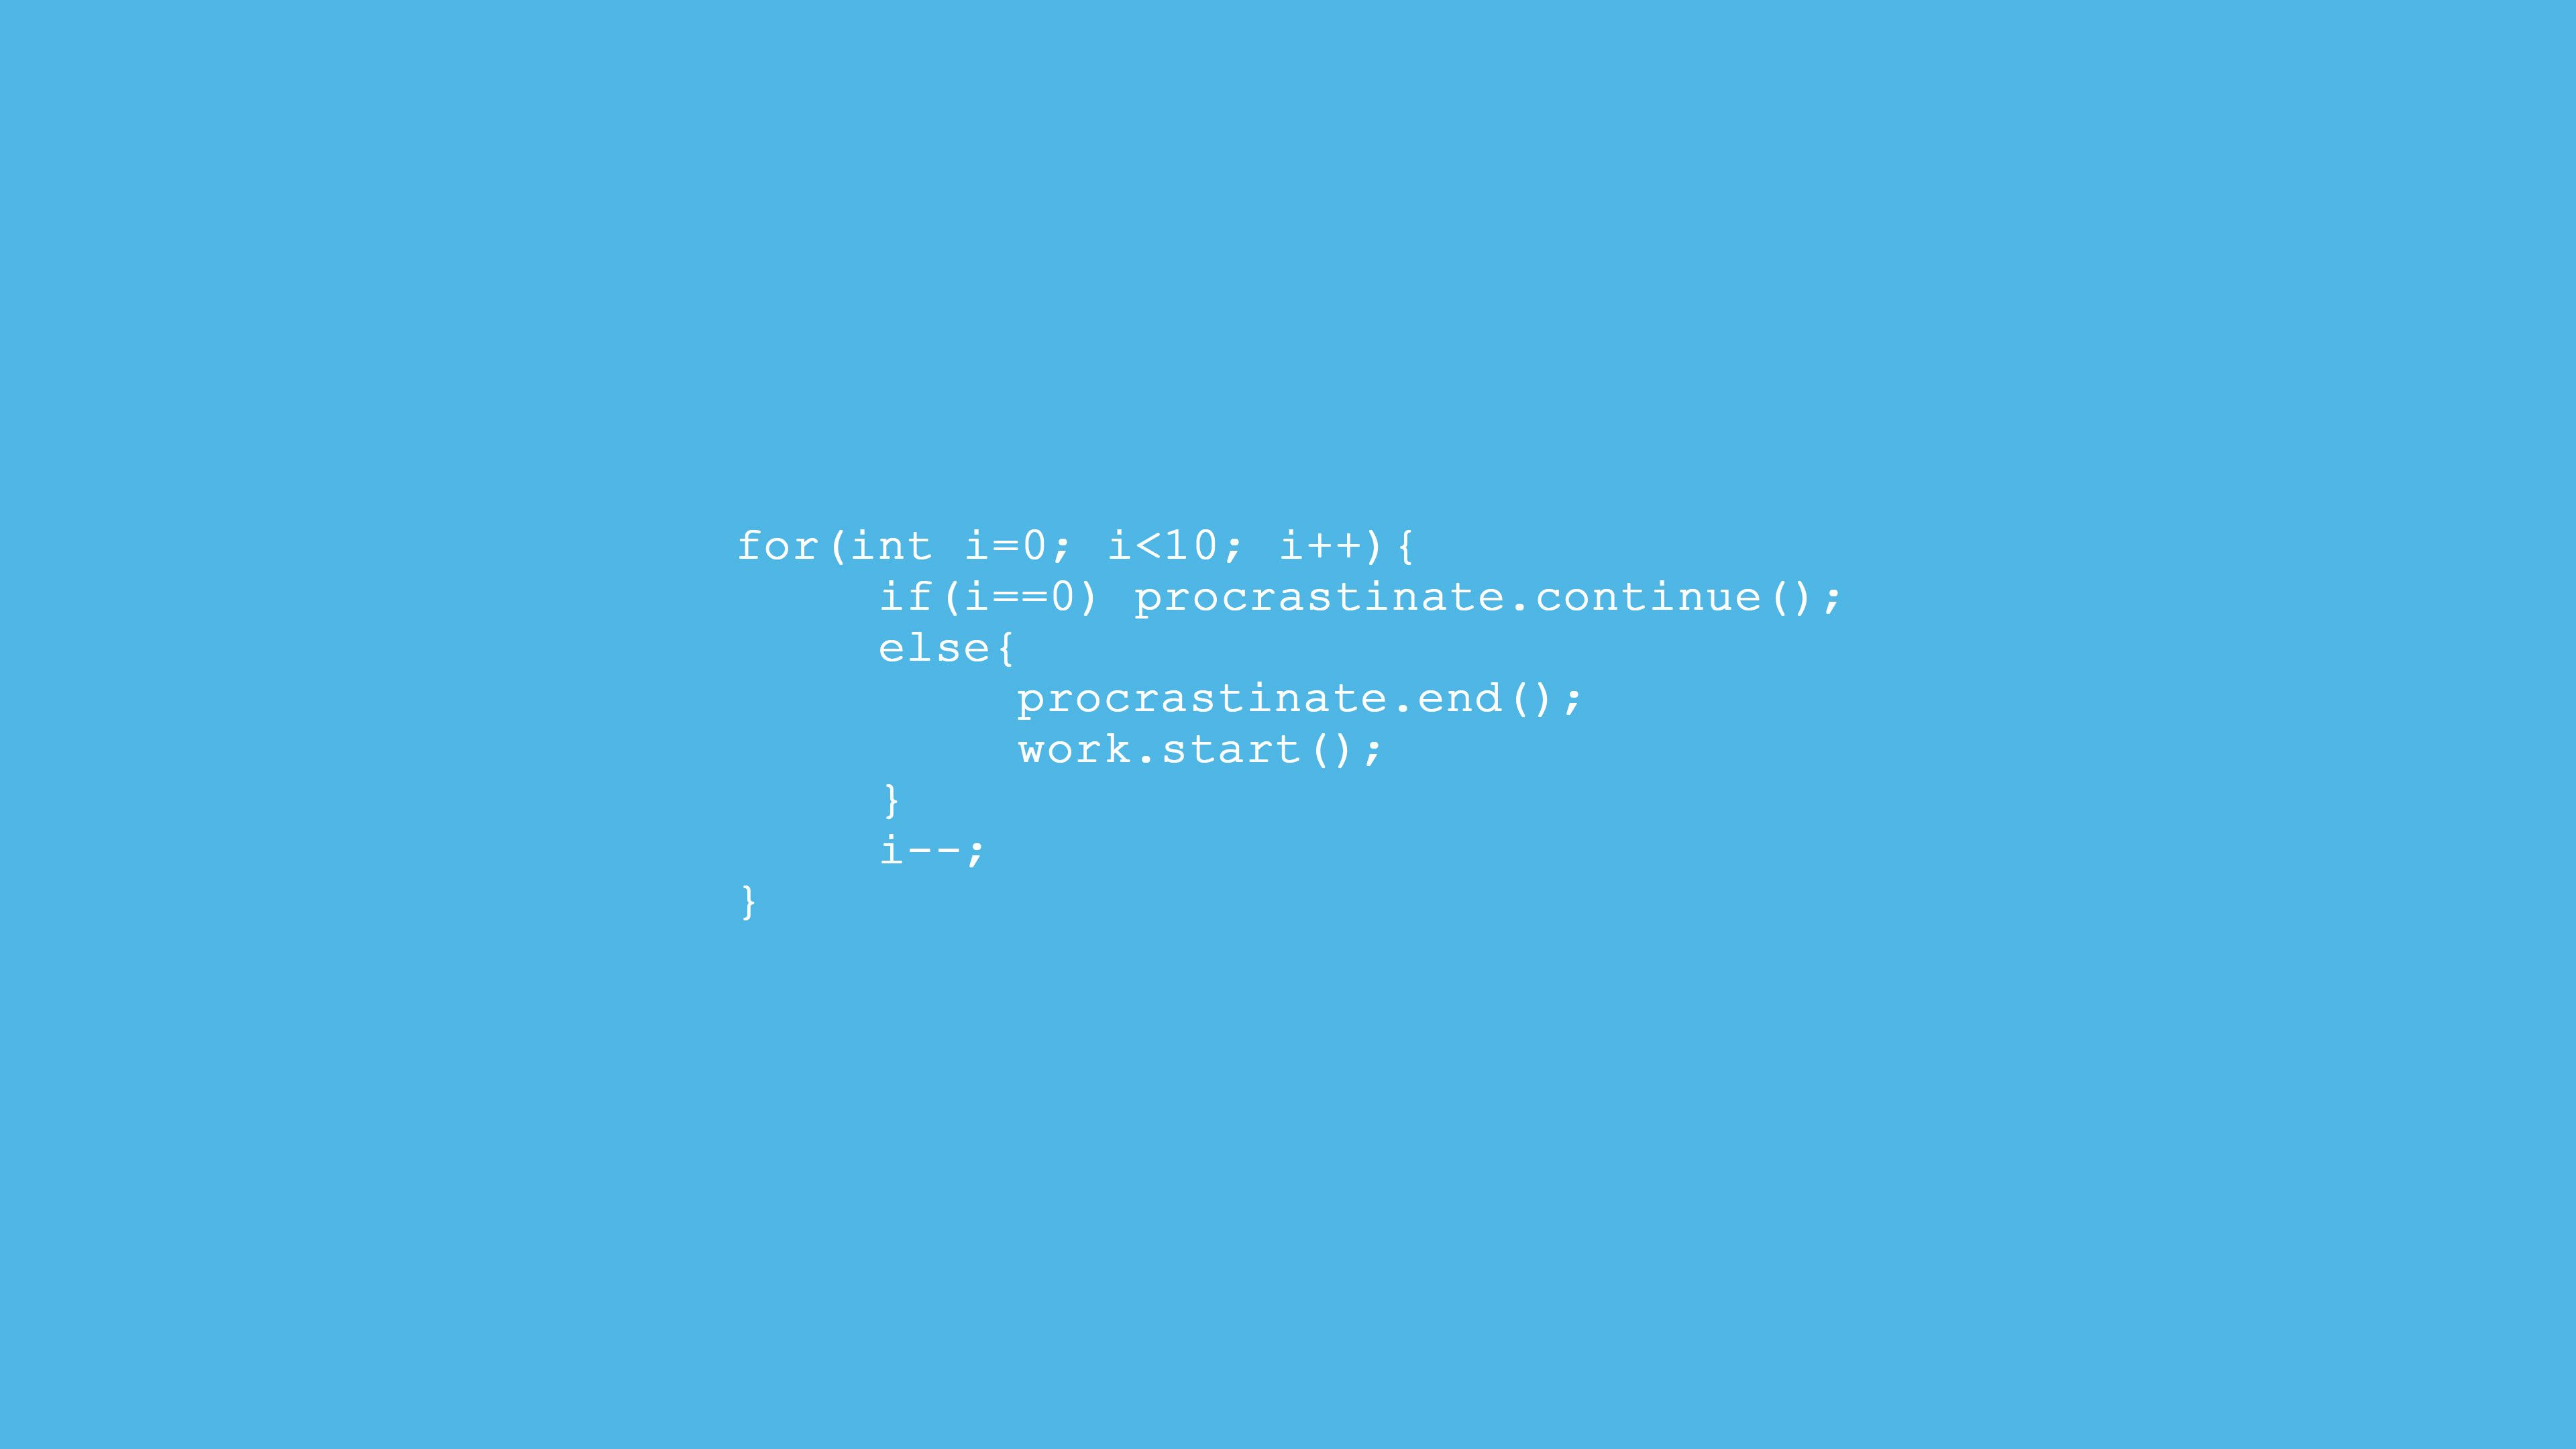 Code To Stop Procrastinating And Start Working Always More To Learn Life Hacks To Design A Bette Cartoon Wallpaper Hd Programmer Humor Programming Humor